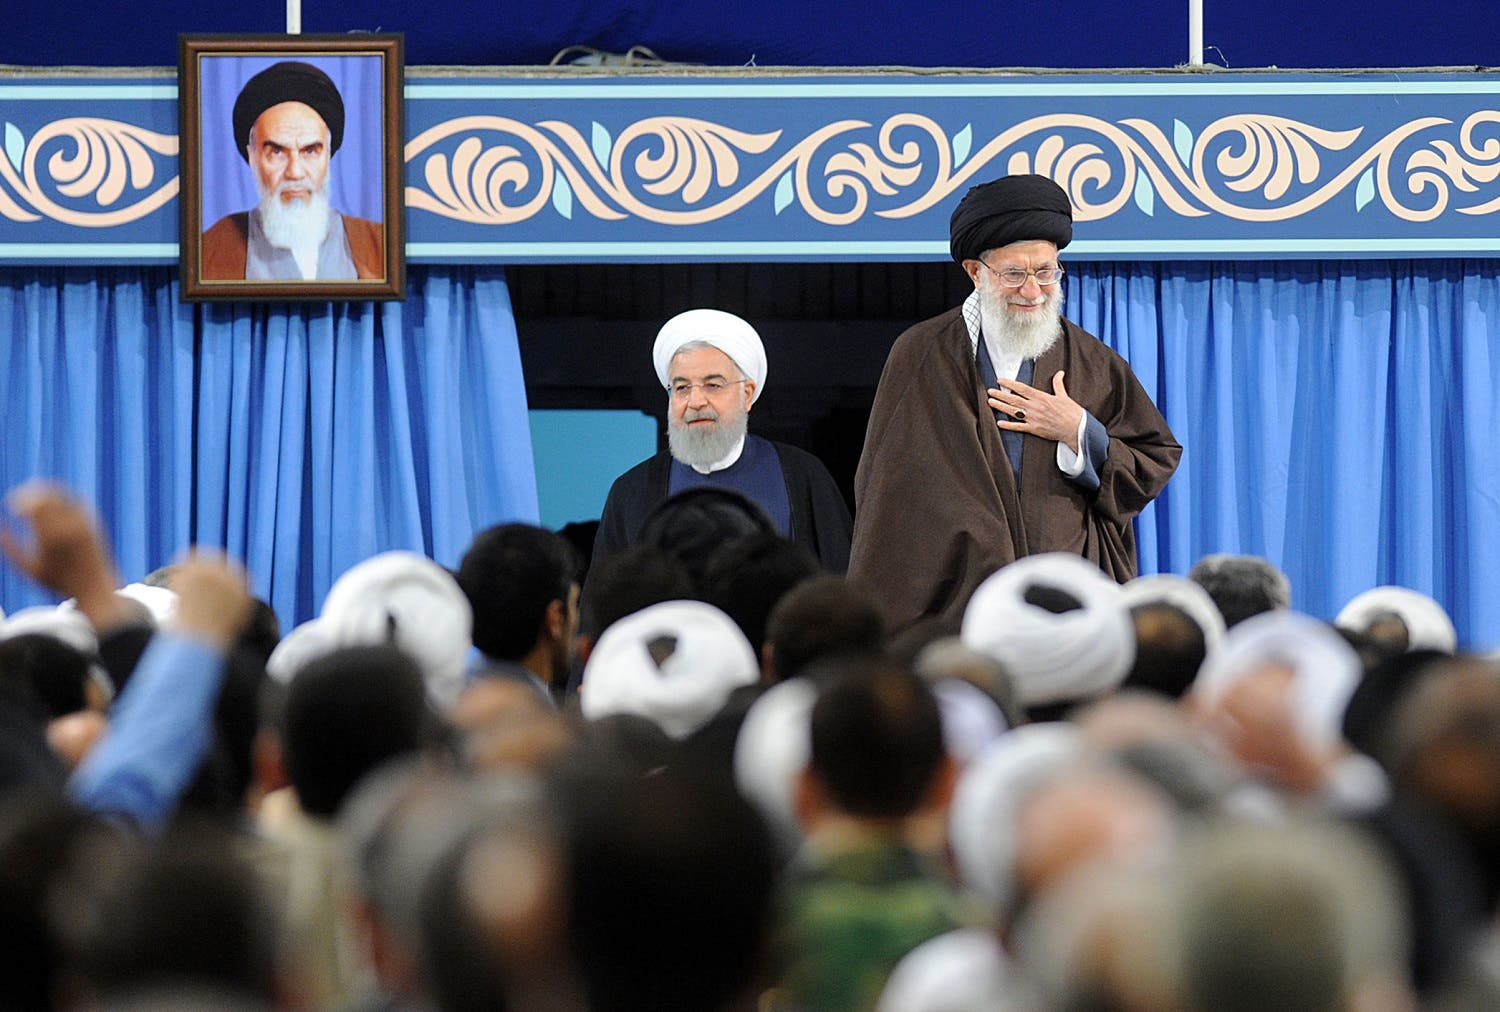 Iran's Supreme Leader Ayatollah Ali Khamenei and President Hasan Rouhani (L) arriving for a ceremony in Tehran on April 14, 2018. (AFP)